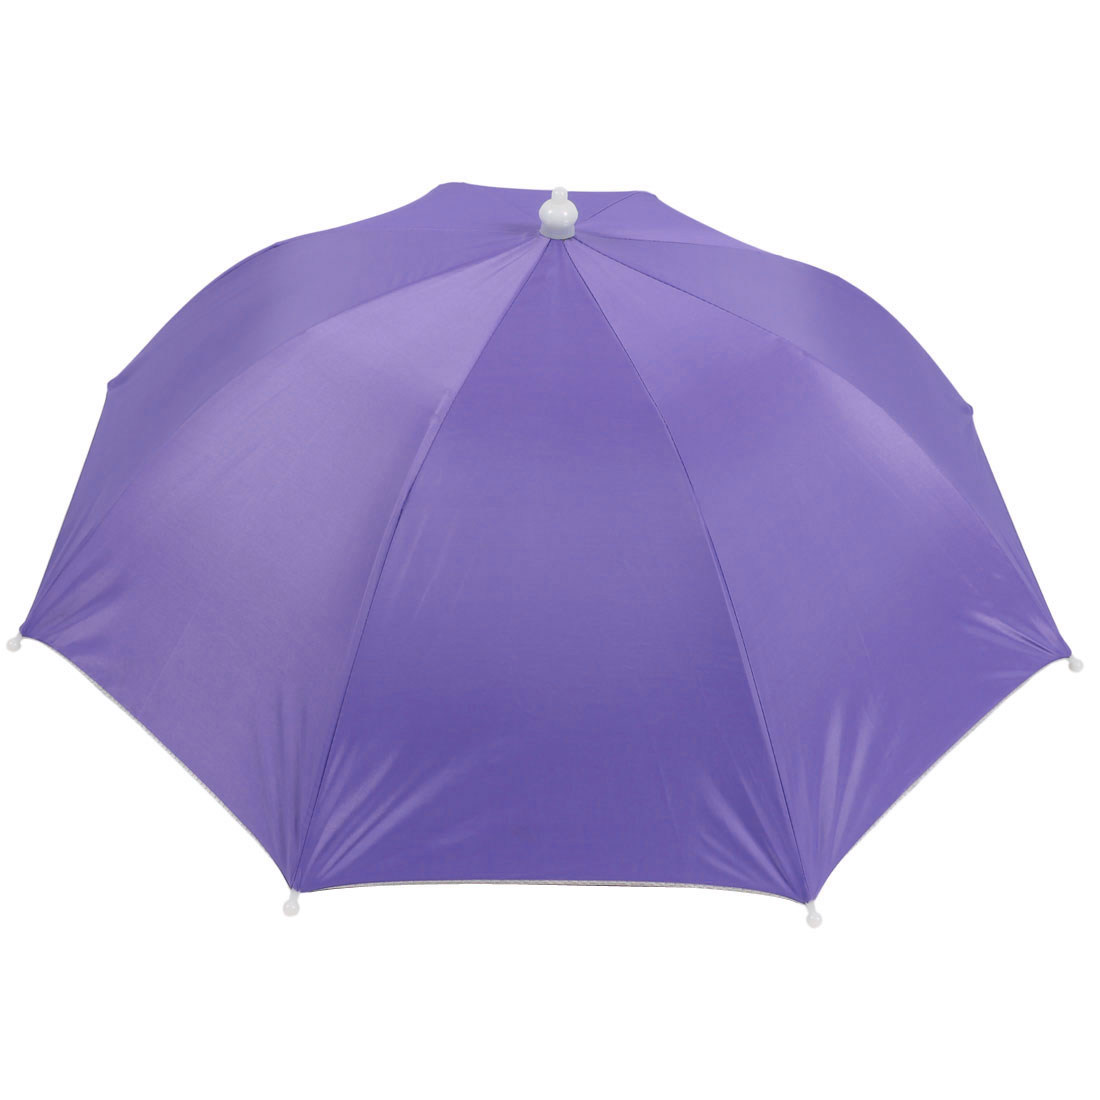 Light Purple Nylon Outdoor Fishing Camping Headwear Umbrella Hat